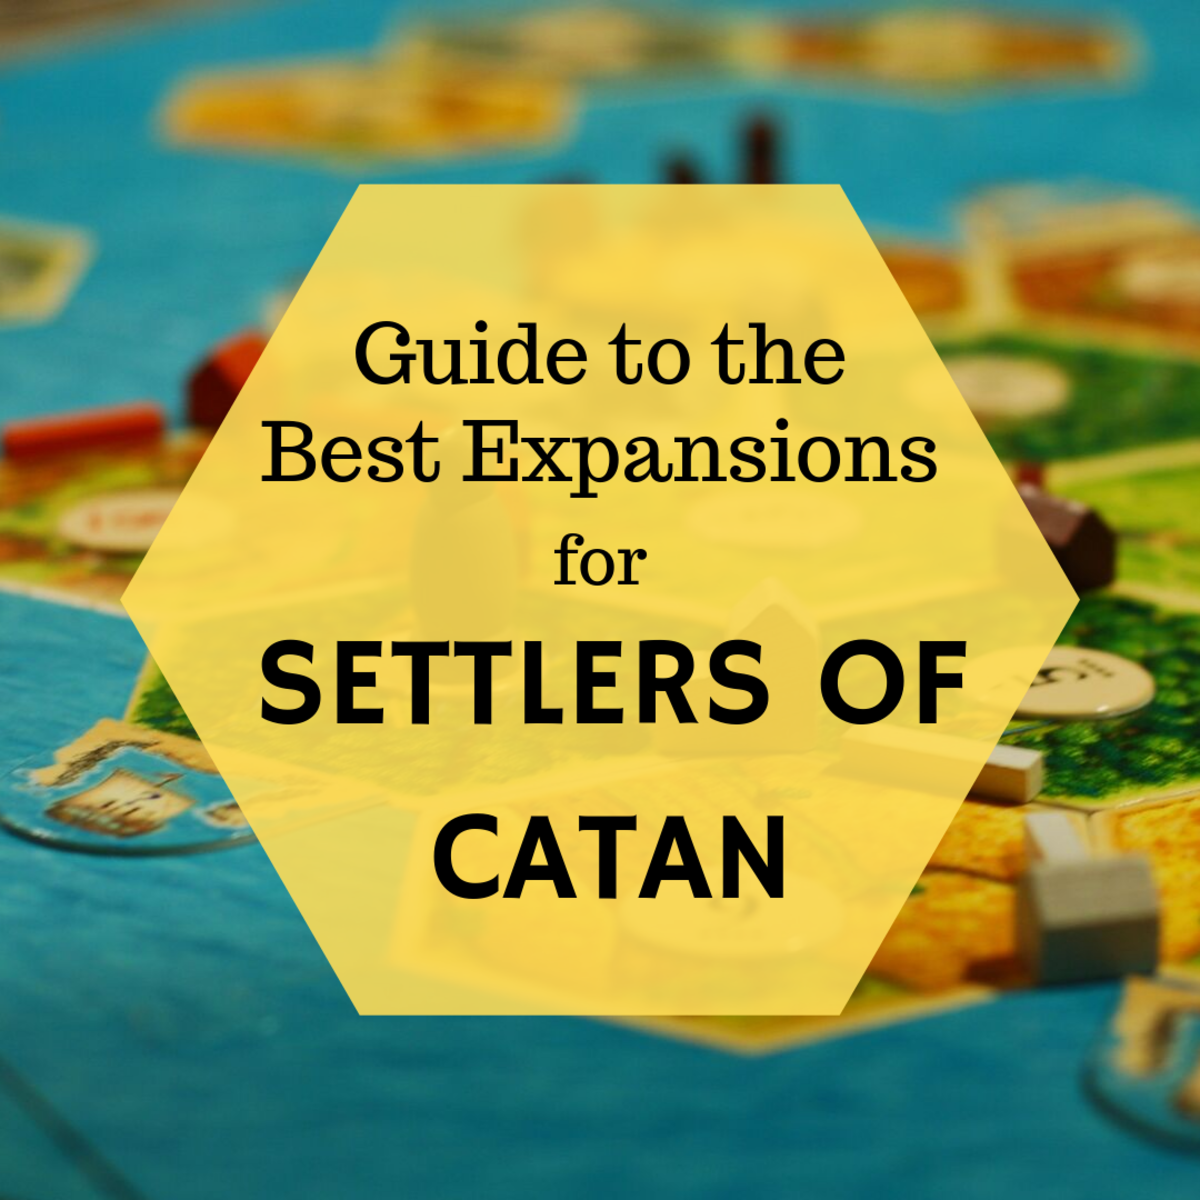 Learn about the various expansions for Settlers of Catan and the new features they add to the game.